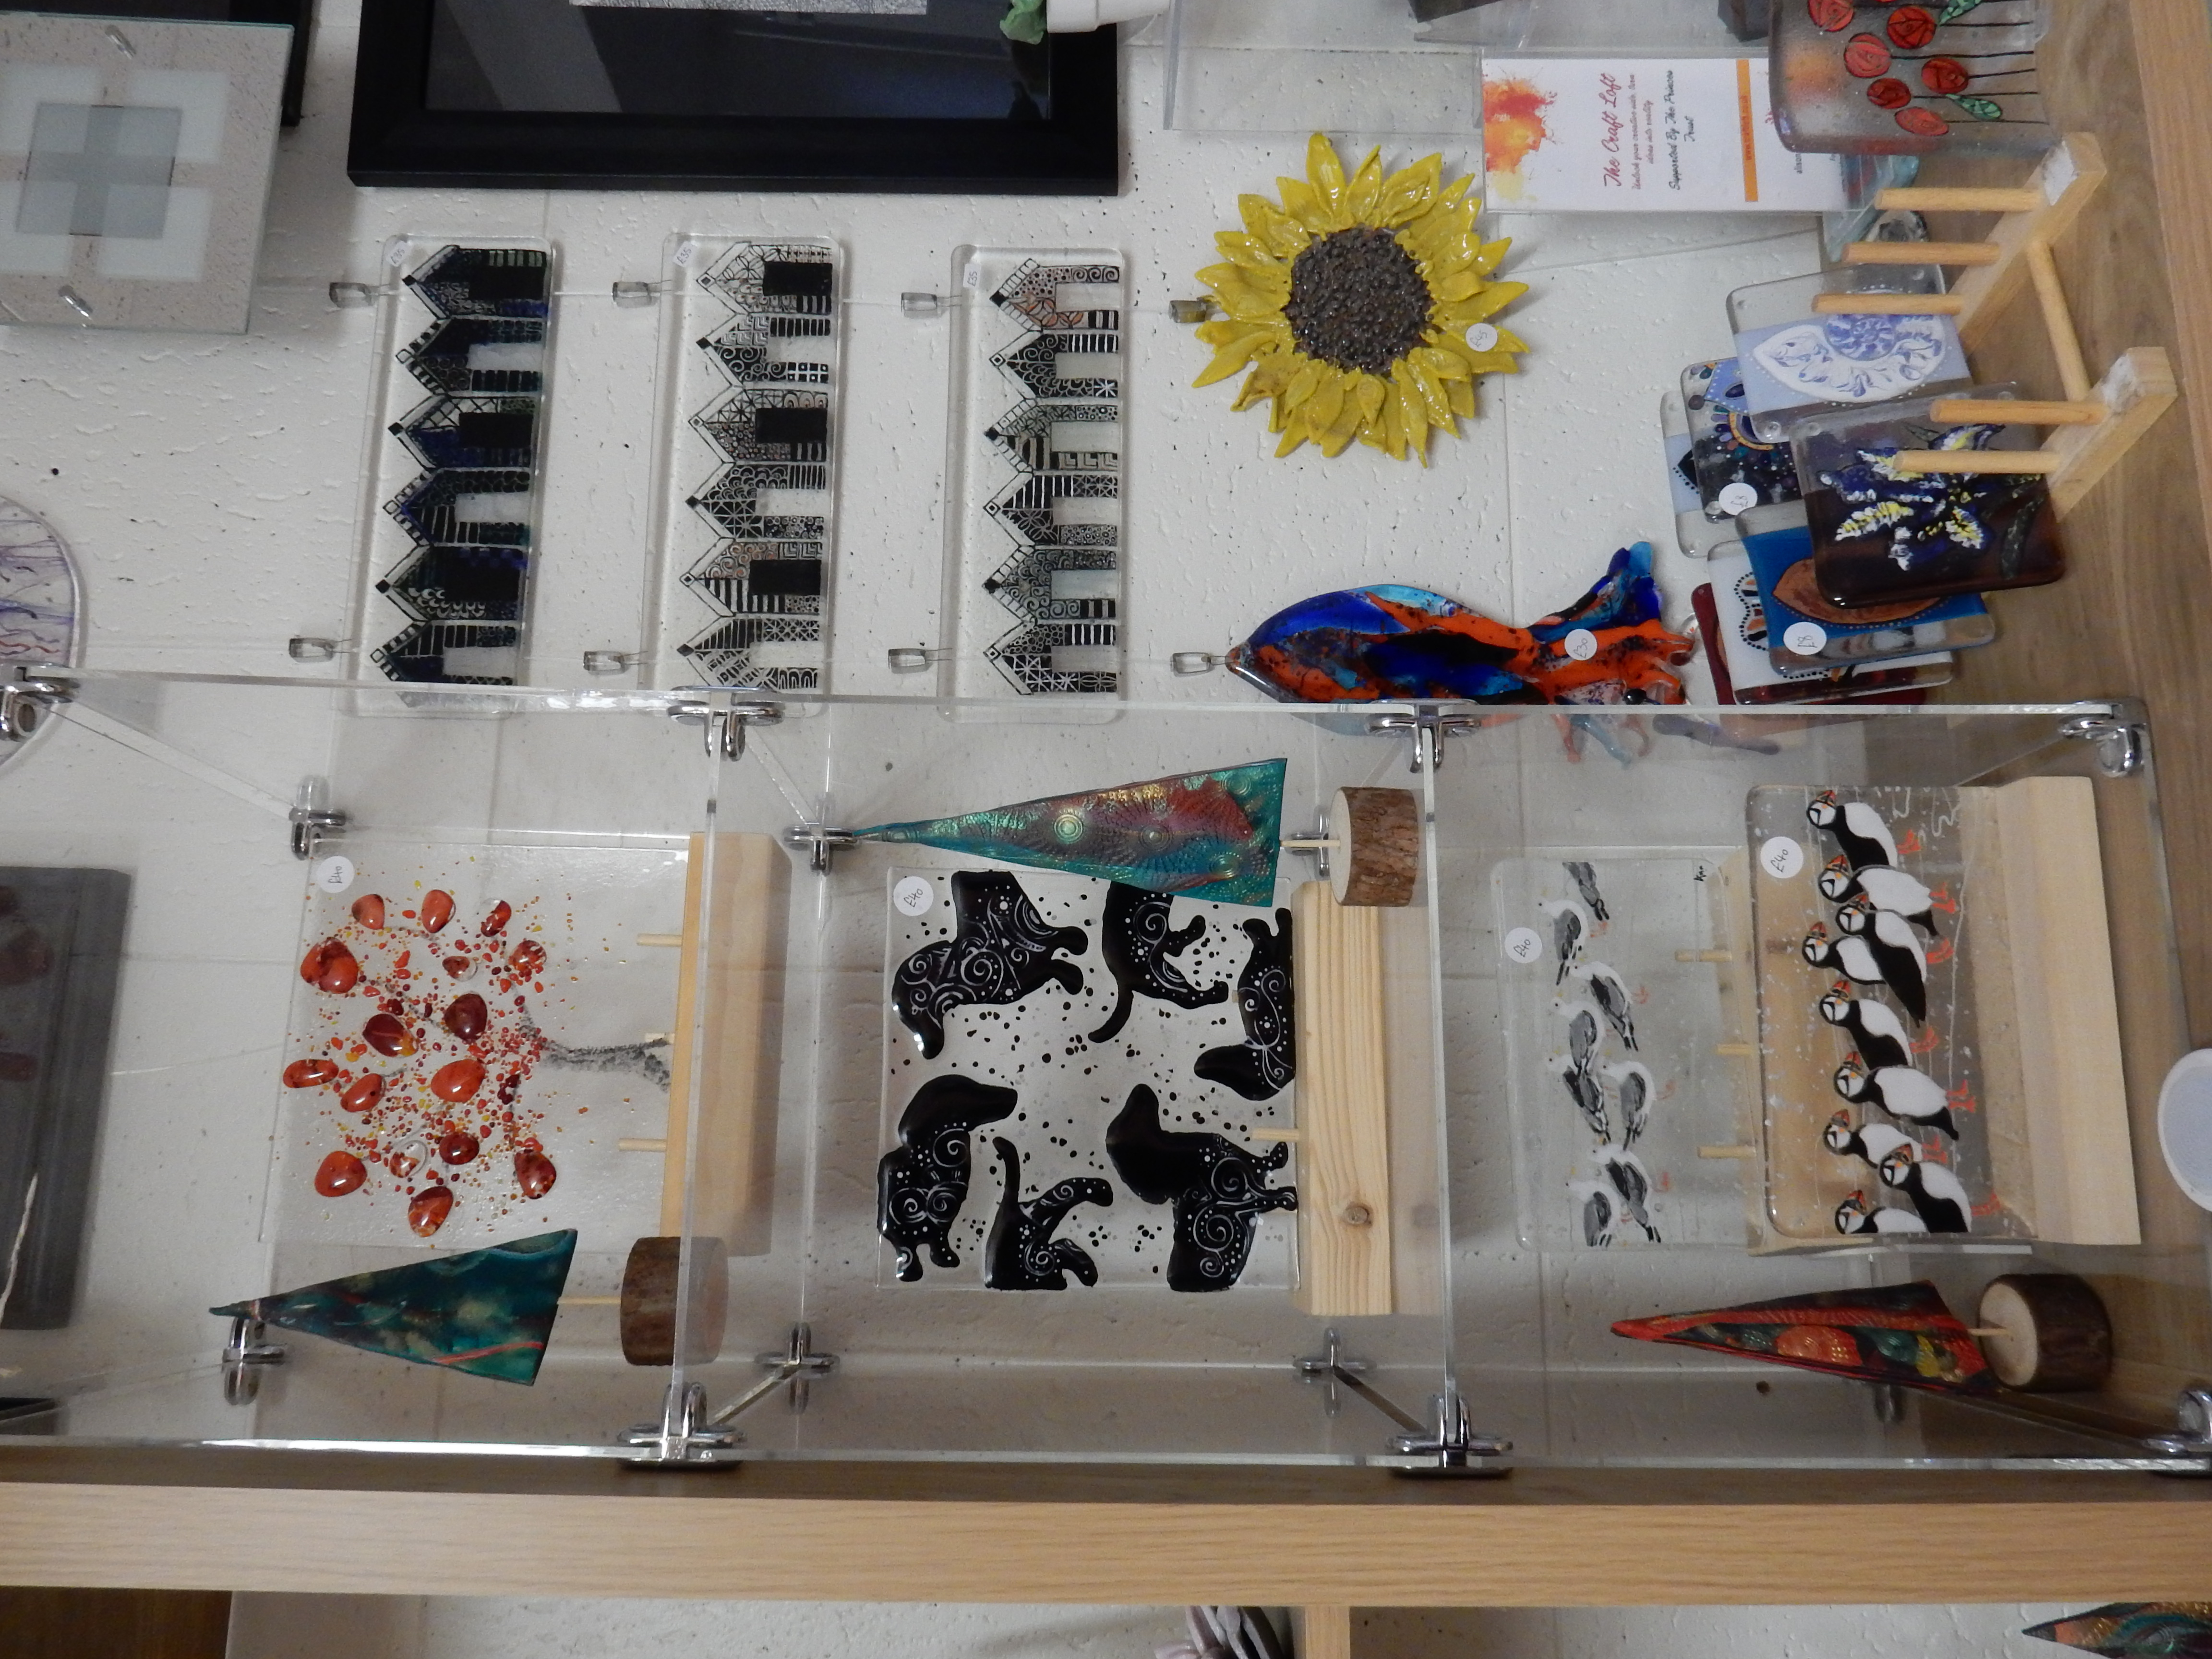 Fused Glass work